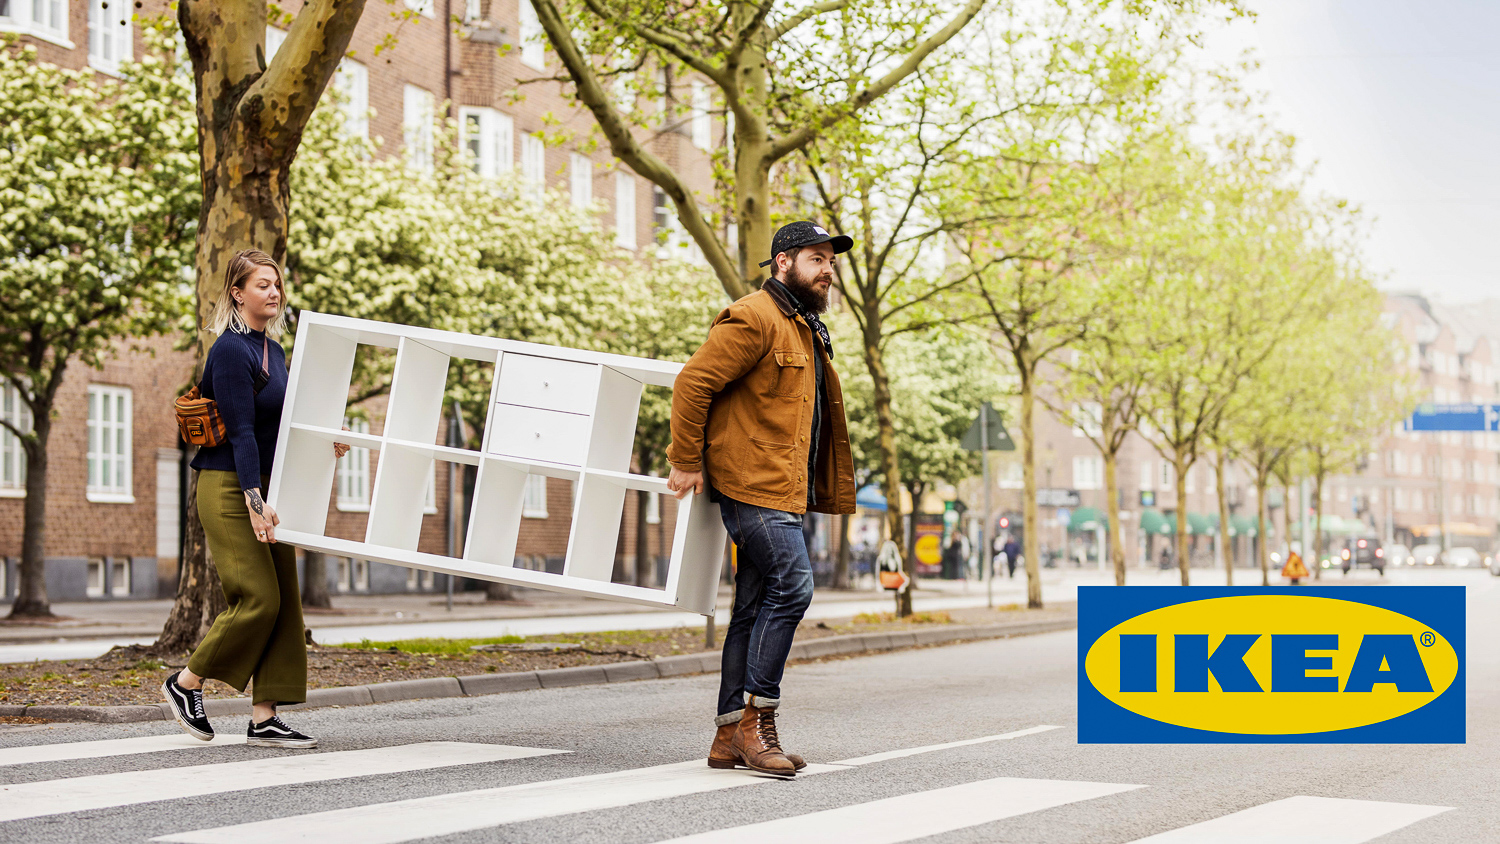 Is IKEA Sustainable? Its Furniture Is Now Being Built to Last Forever